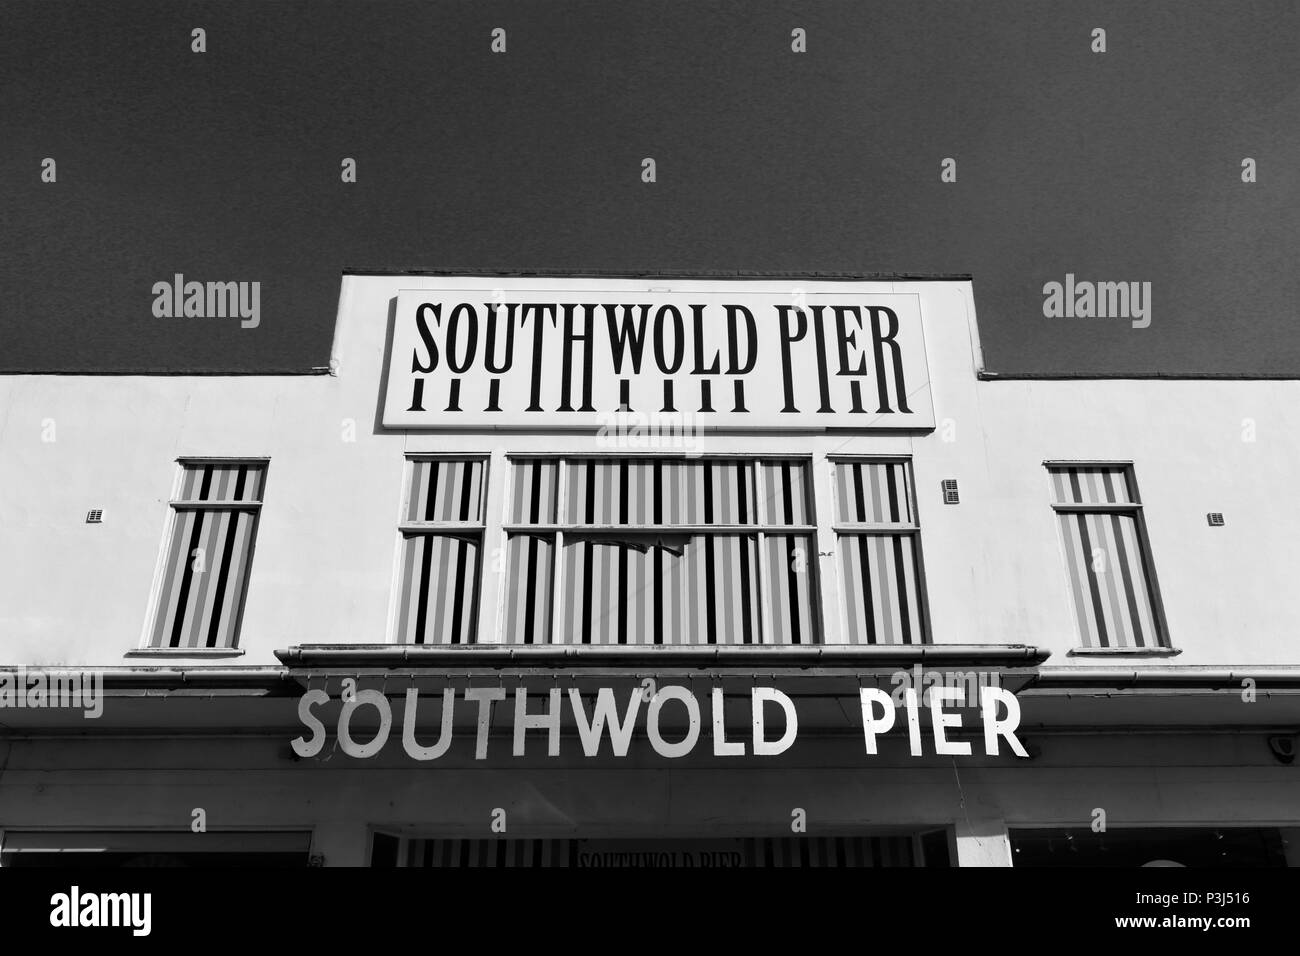 Southwold Pier, Southwold Town, Suffolk County, England, UK, - Stock Image